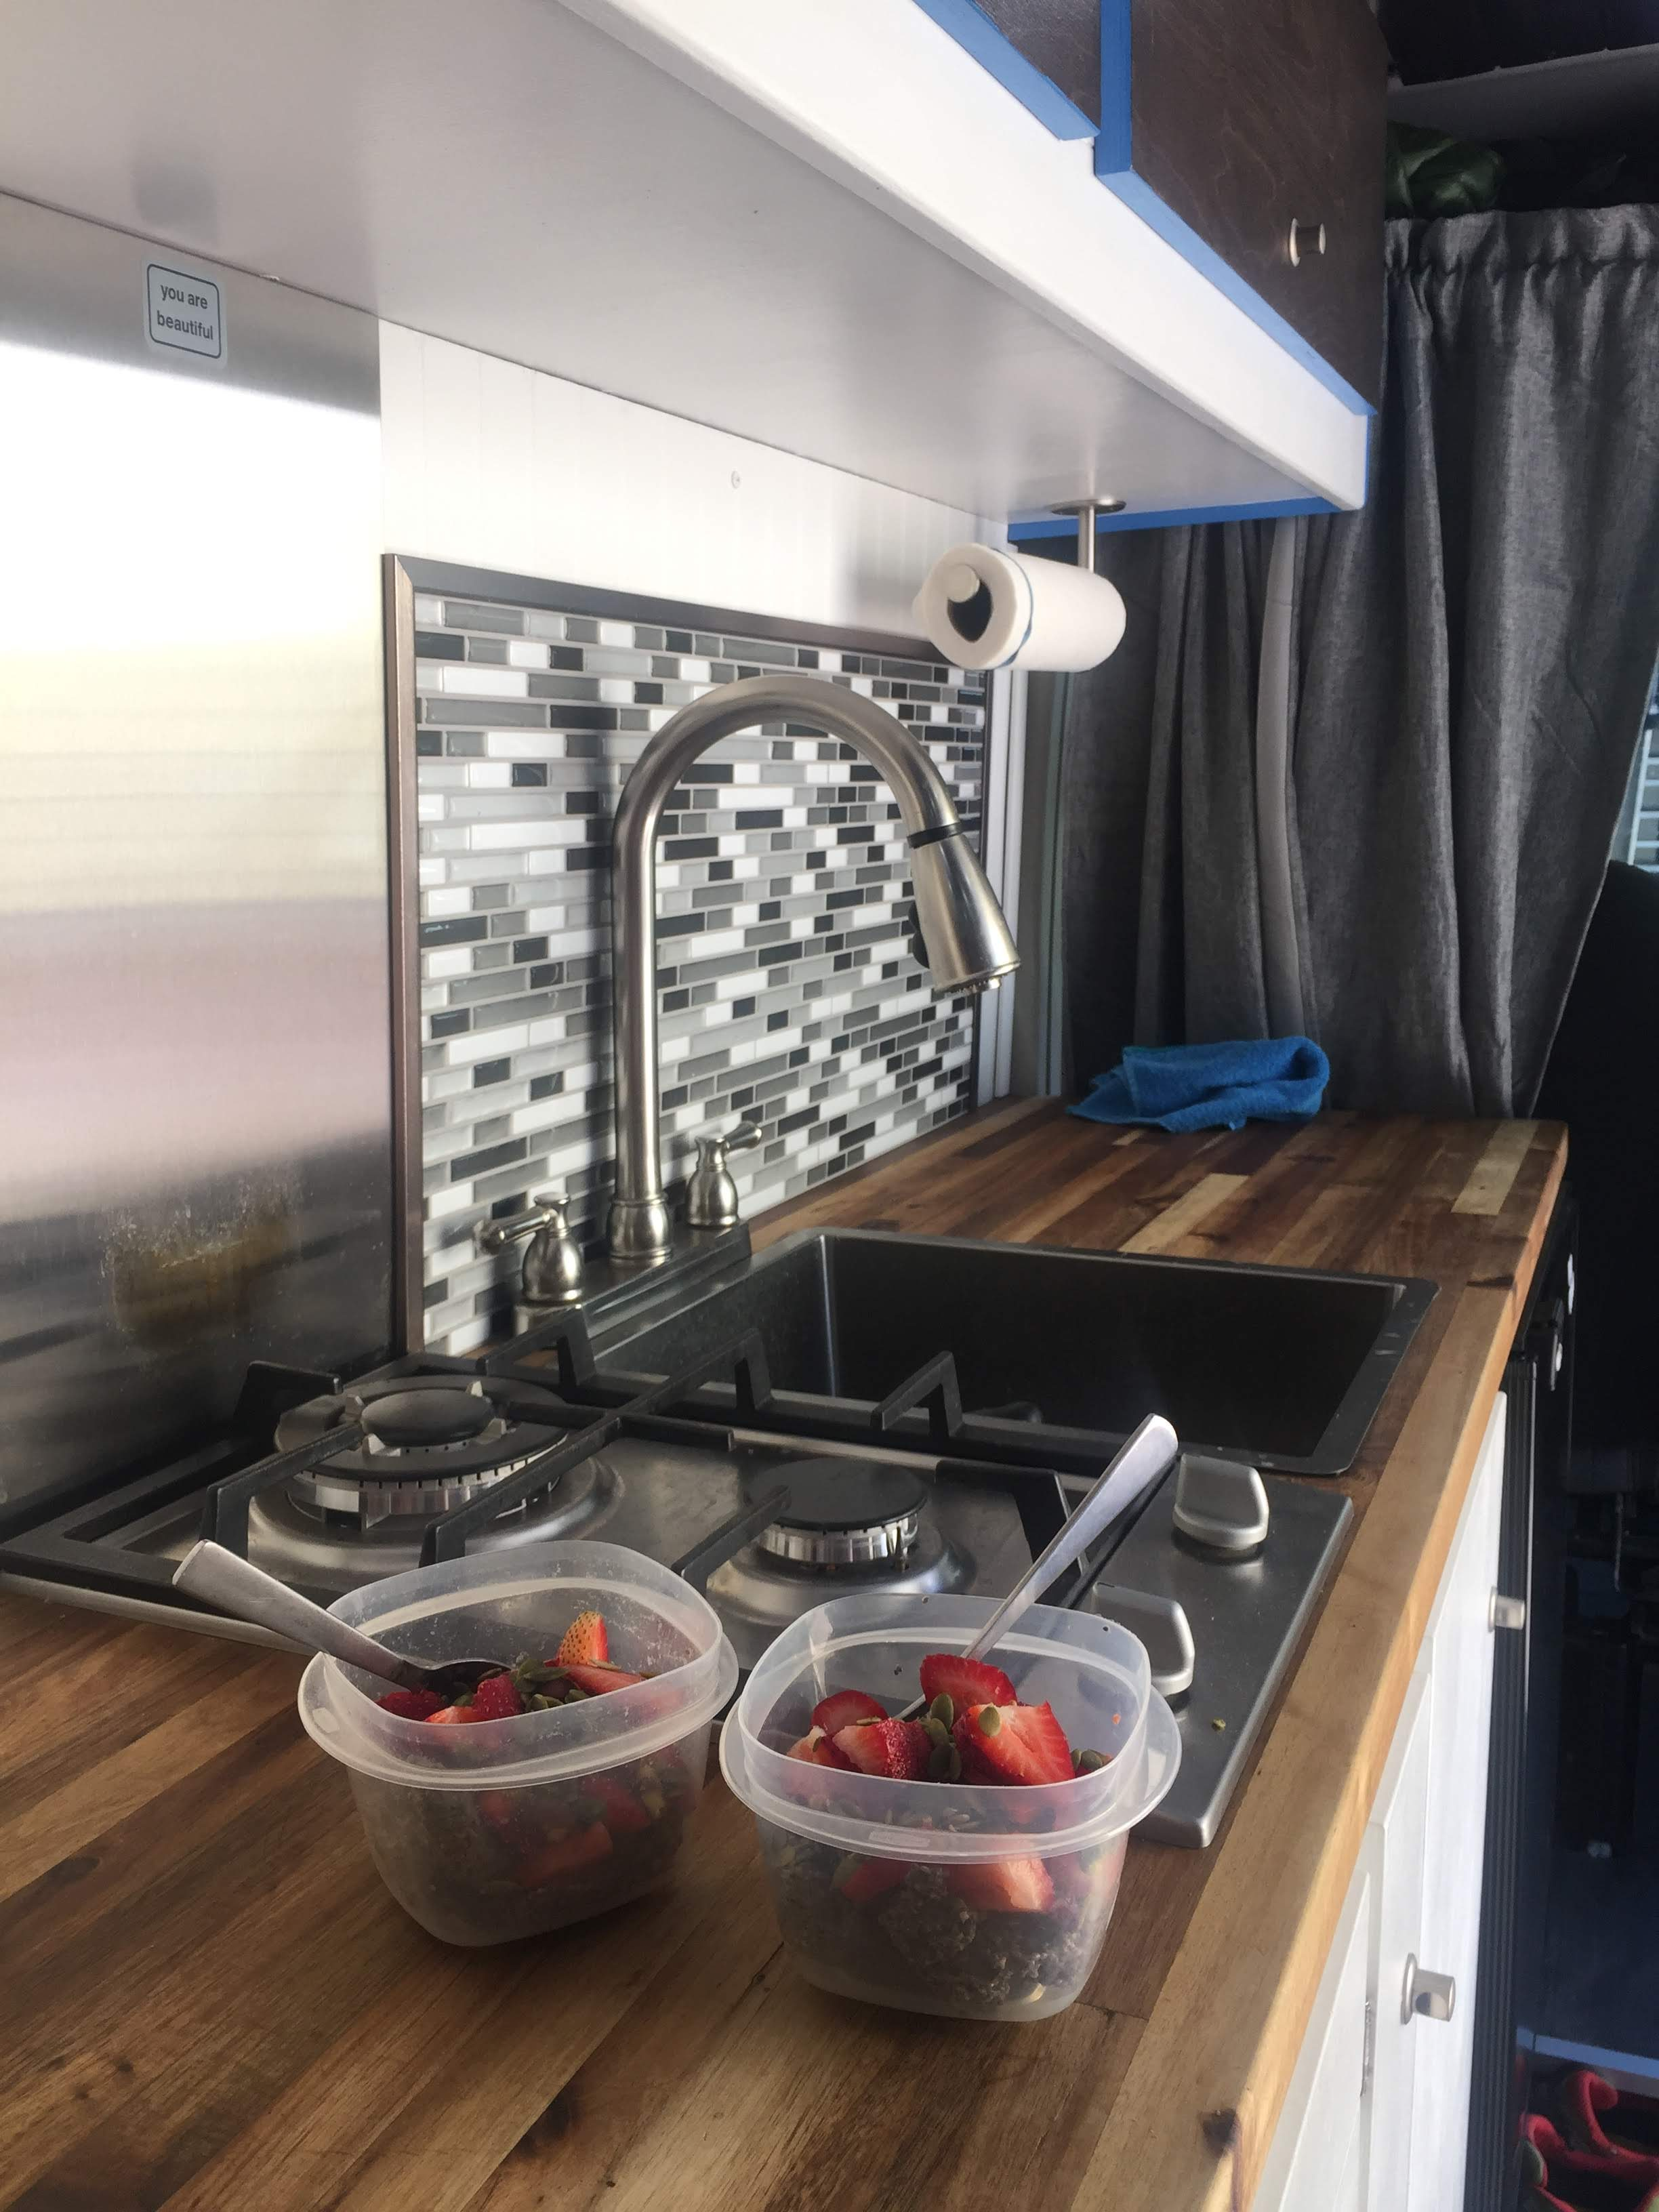 van life food cook